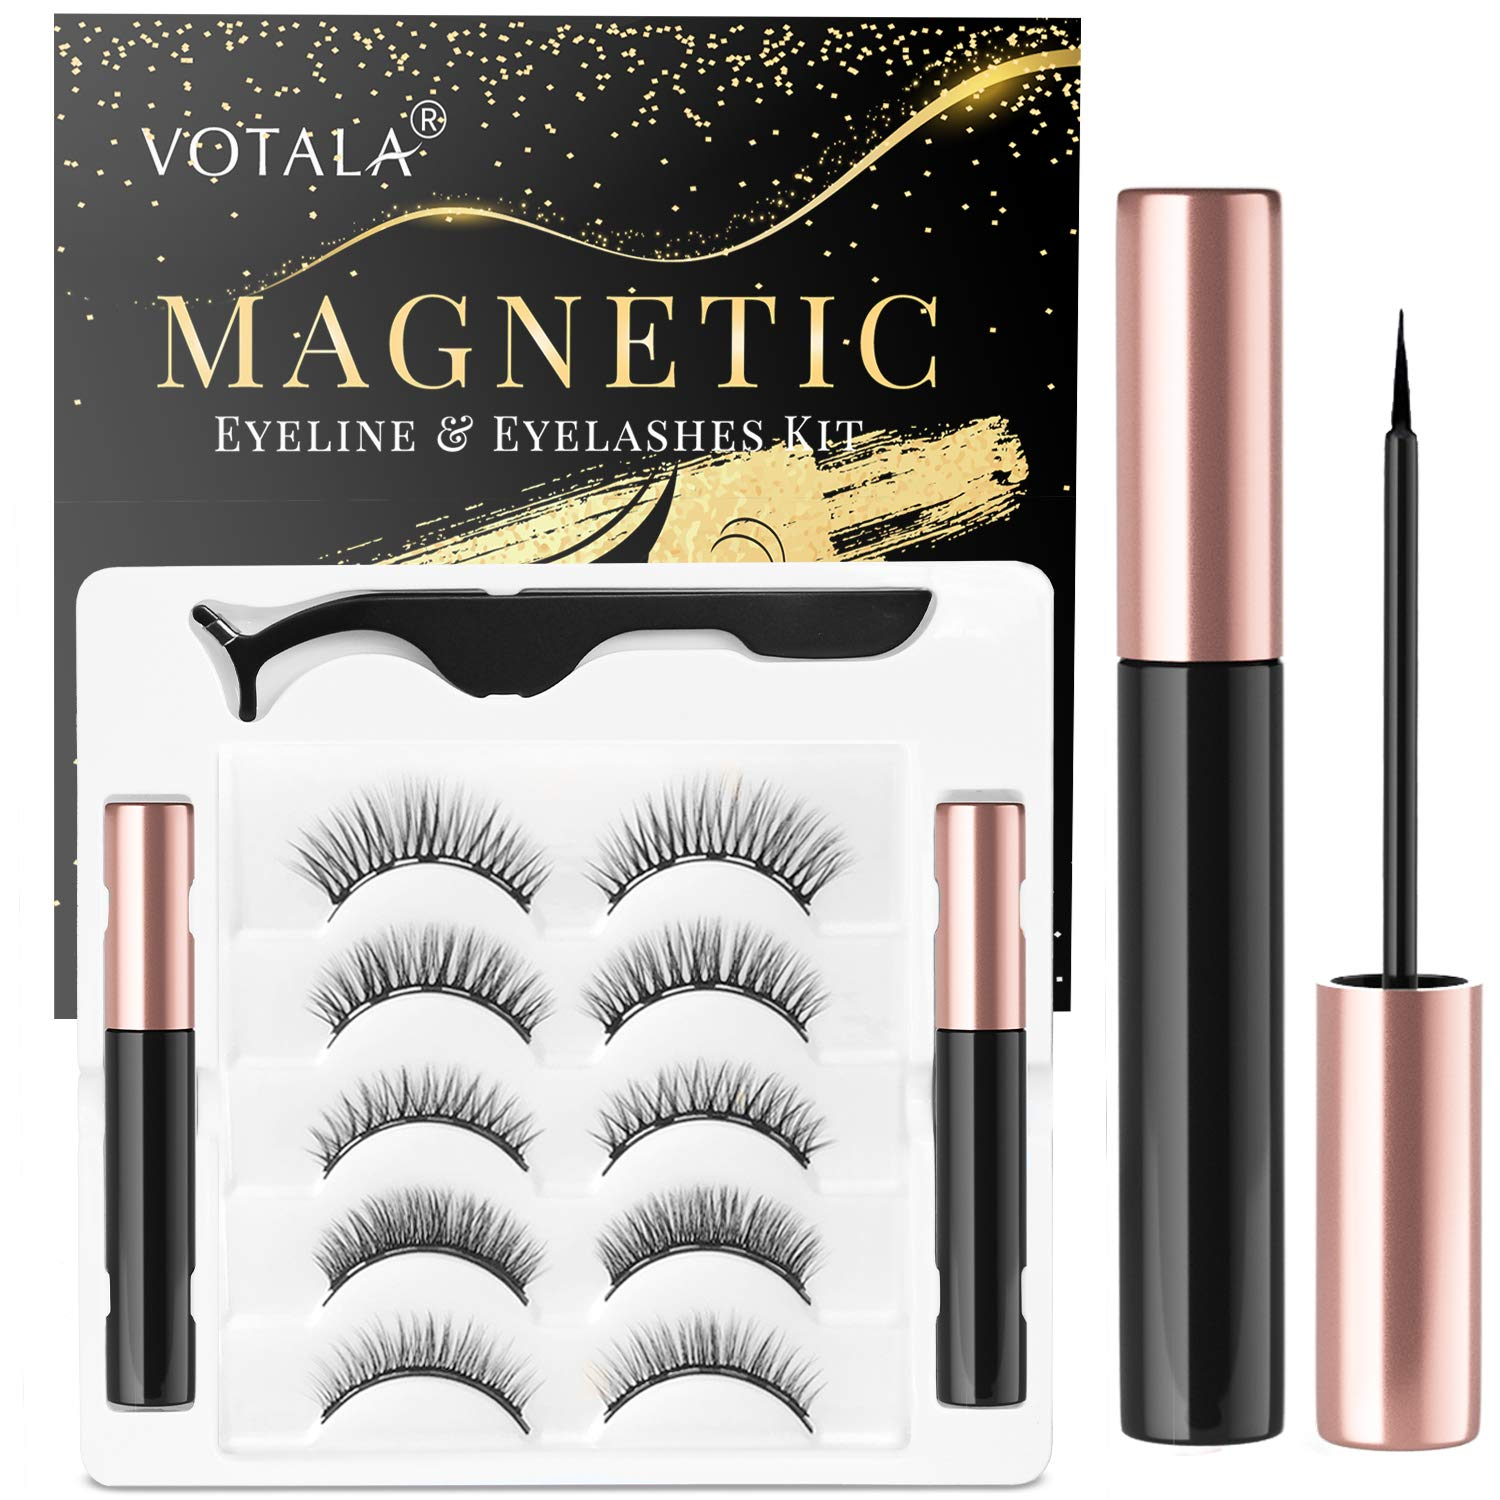 Votala Magnetic Eyelashes and Magnetic Eyeliner Kit, 5 Pairs of Different Styles Reusable 3D Magnetic Eyelashes with 2 Special Magnetic Eyeliners and Tweezers, with Natural Look(Natural)